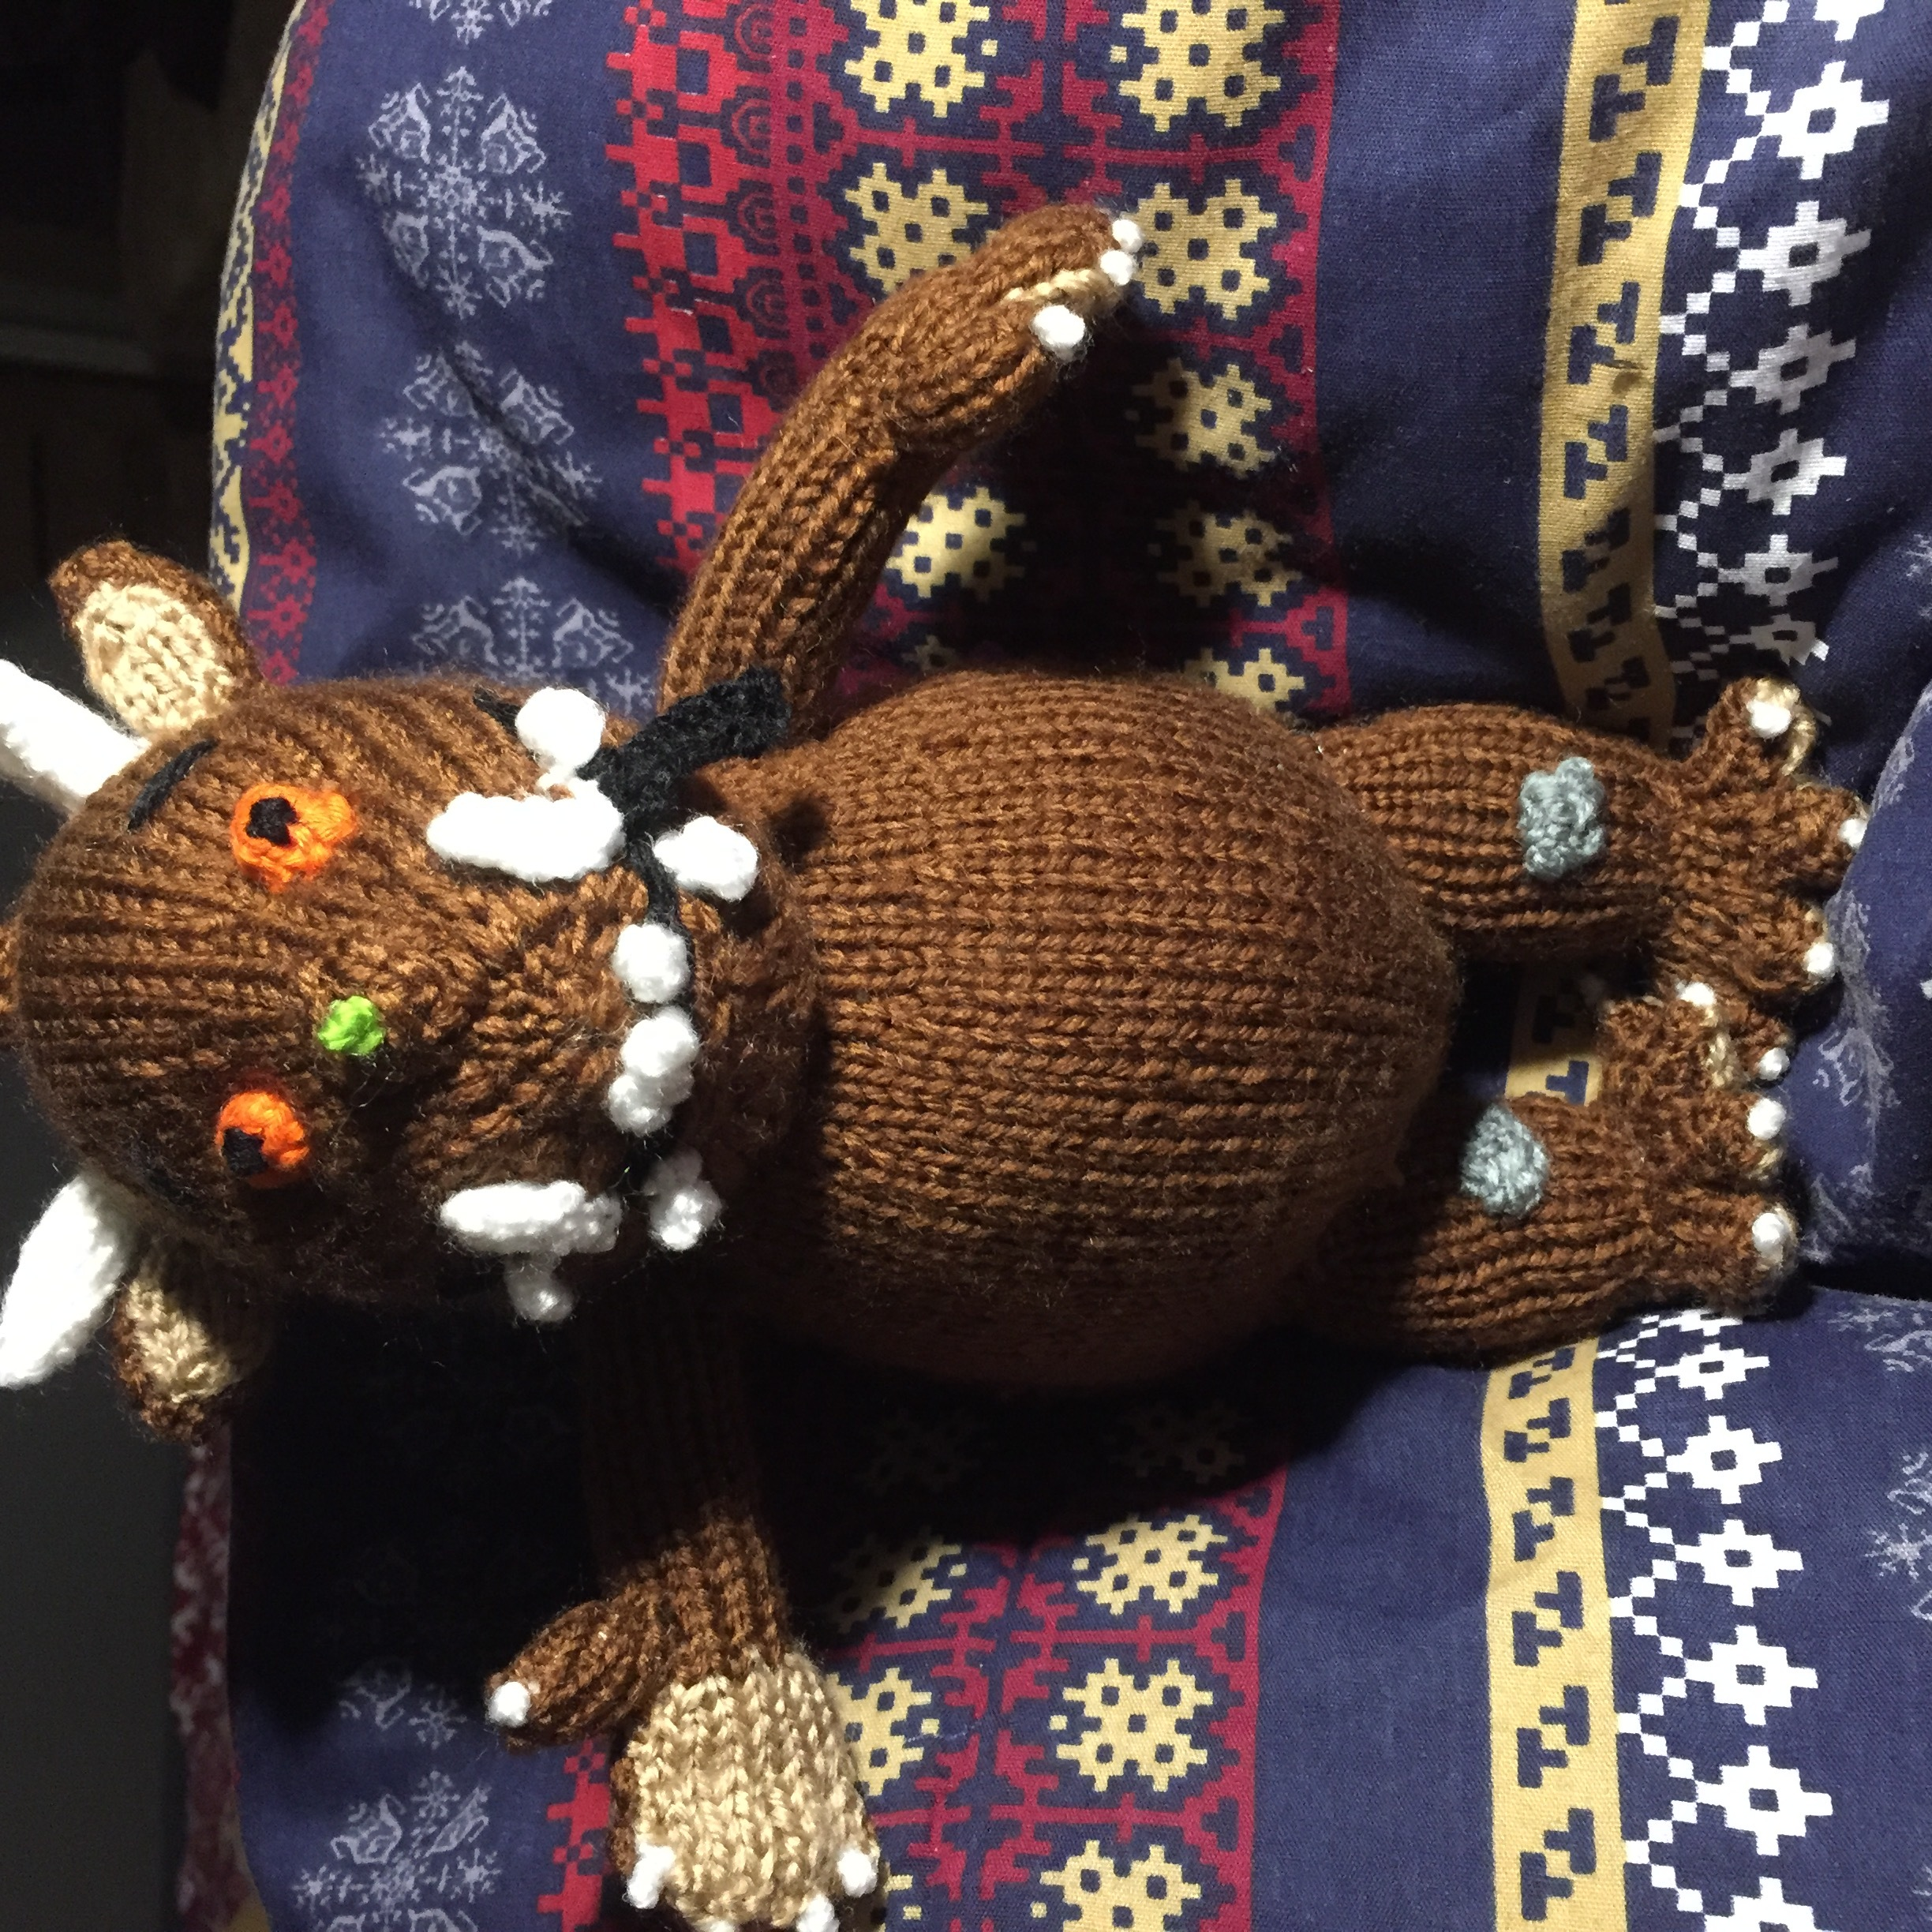 Knitted Gruffalo toy knitting project by Marcie P LoveKnitting